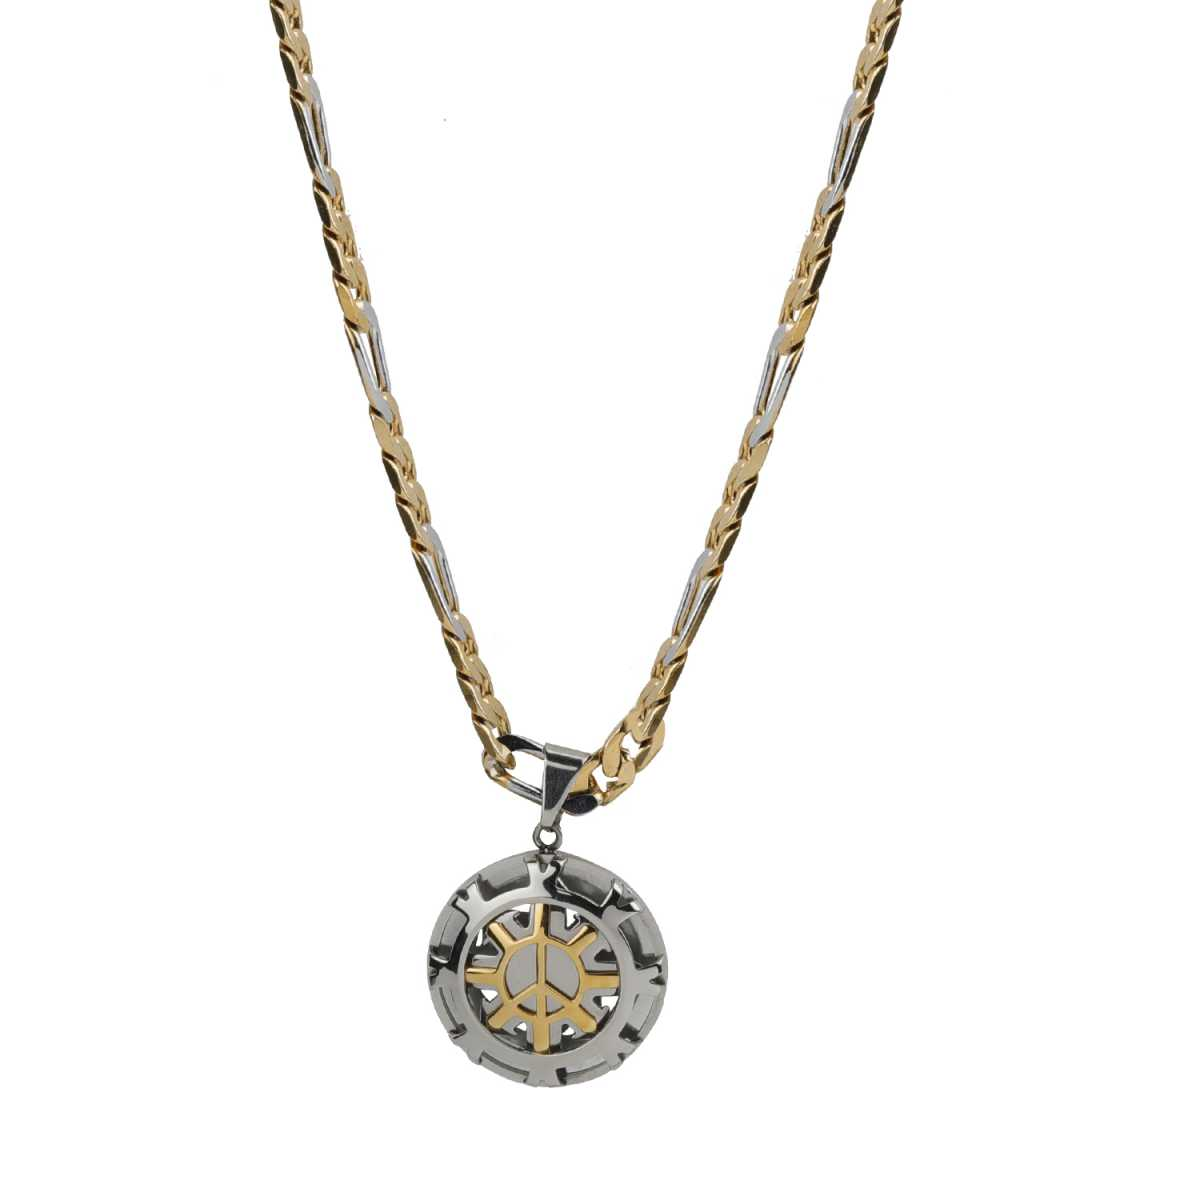 Silver Shine Beautiful Gold Plated Stainless Steel Traditional Icon Pendent Chain Neckless Jewellry 20 Inch For Men And Boys